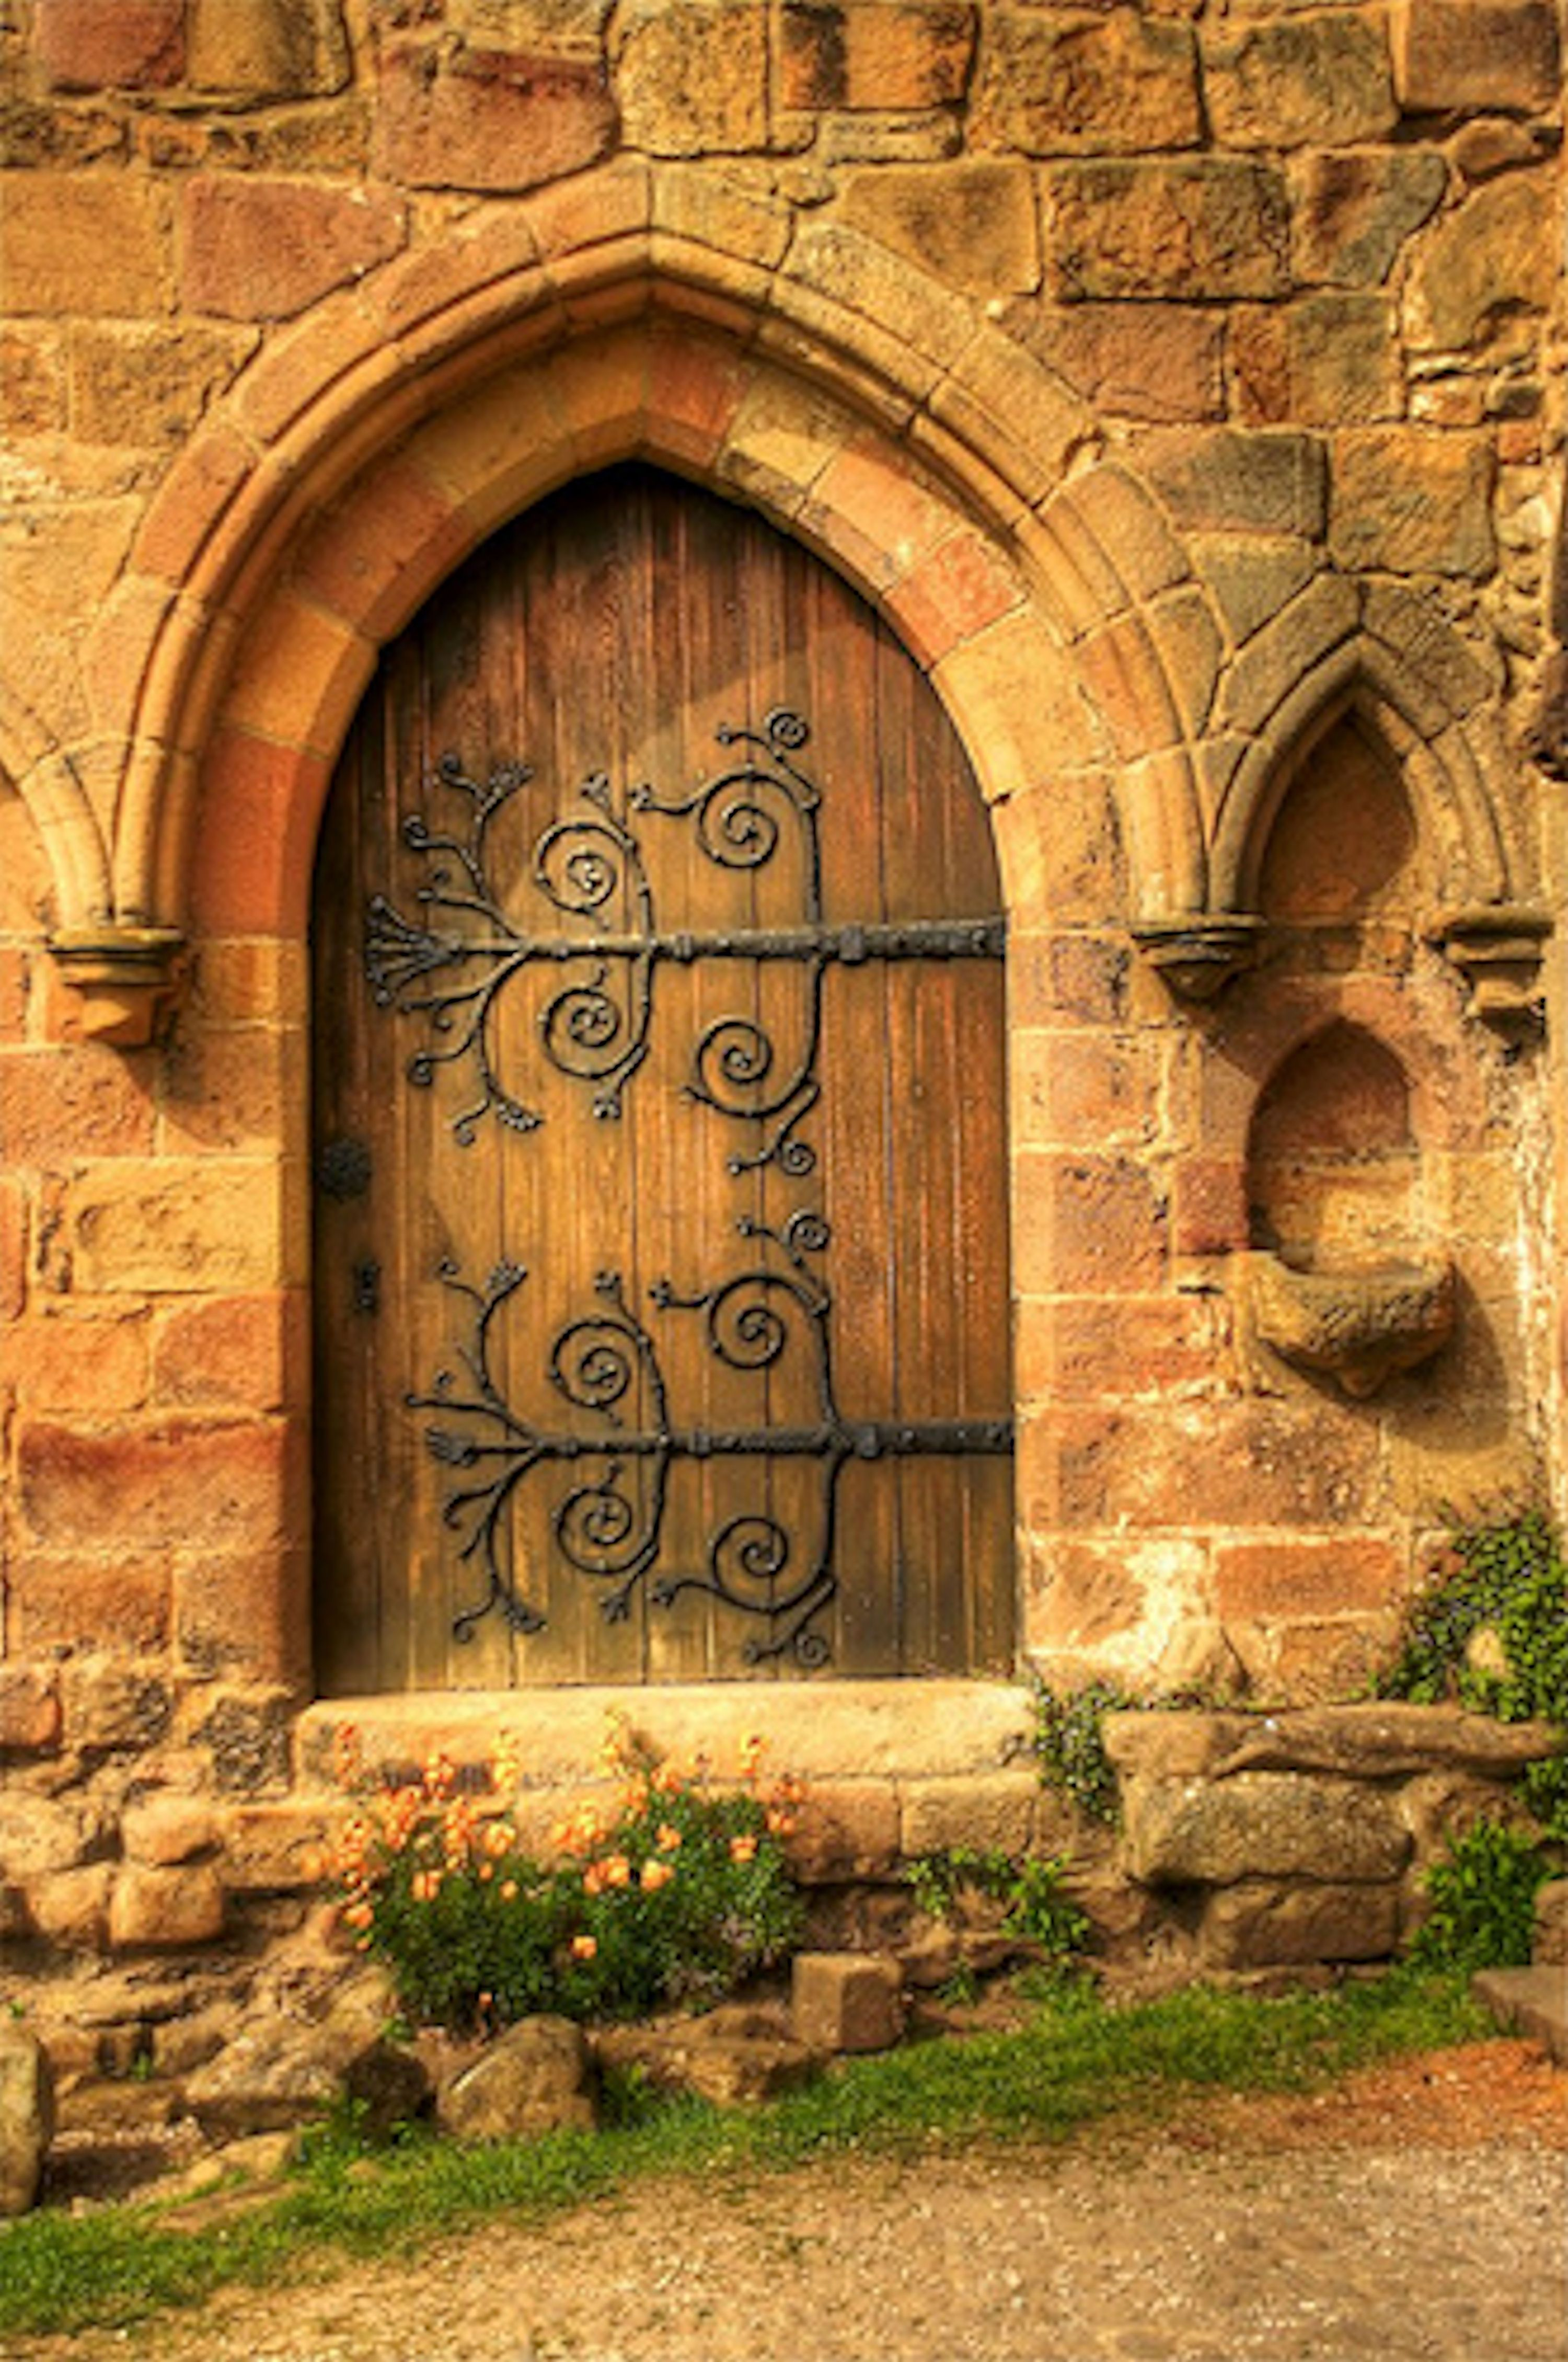 Wooden Entrance Bolton Abbey England. Been here. Loved the beautiful architecture. And especially loved the door! & Wooden Entrance Bolton Abbey England. Been here. Loved the ...